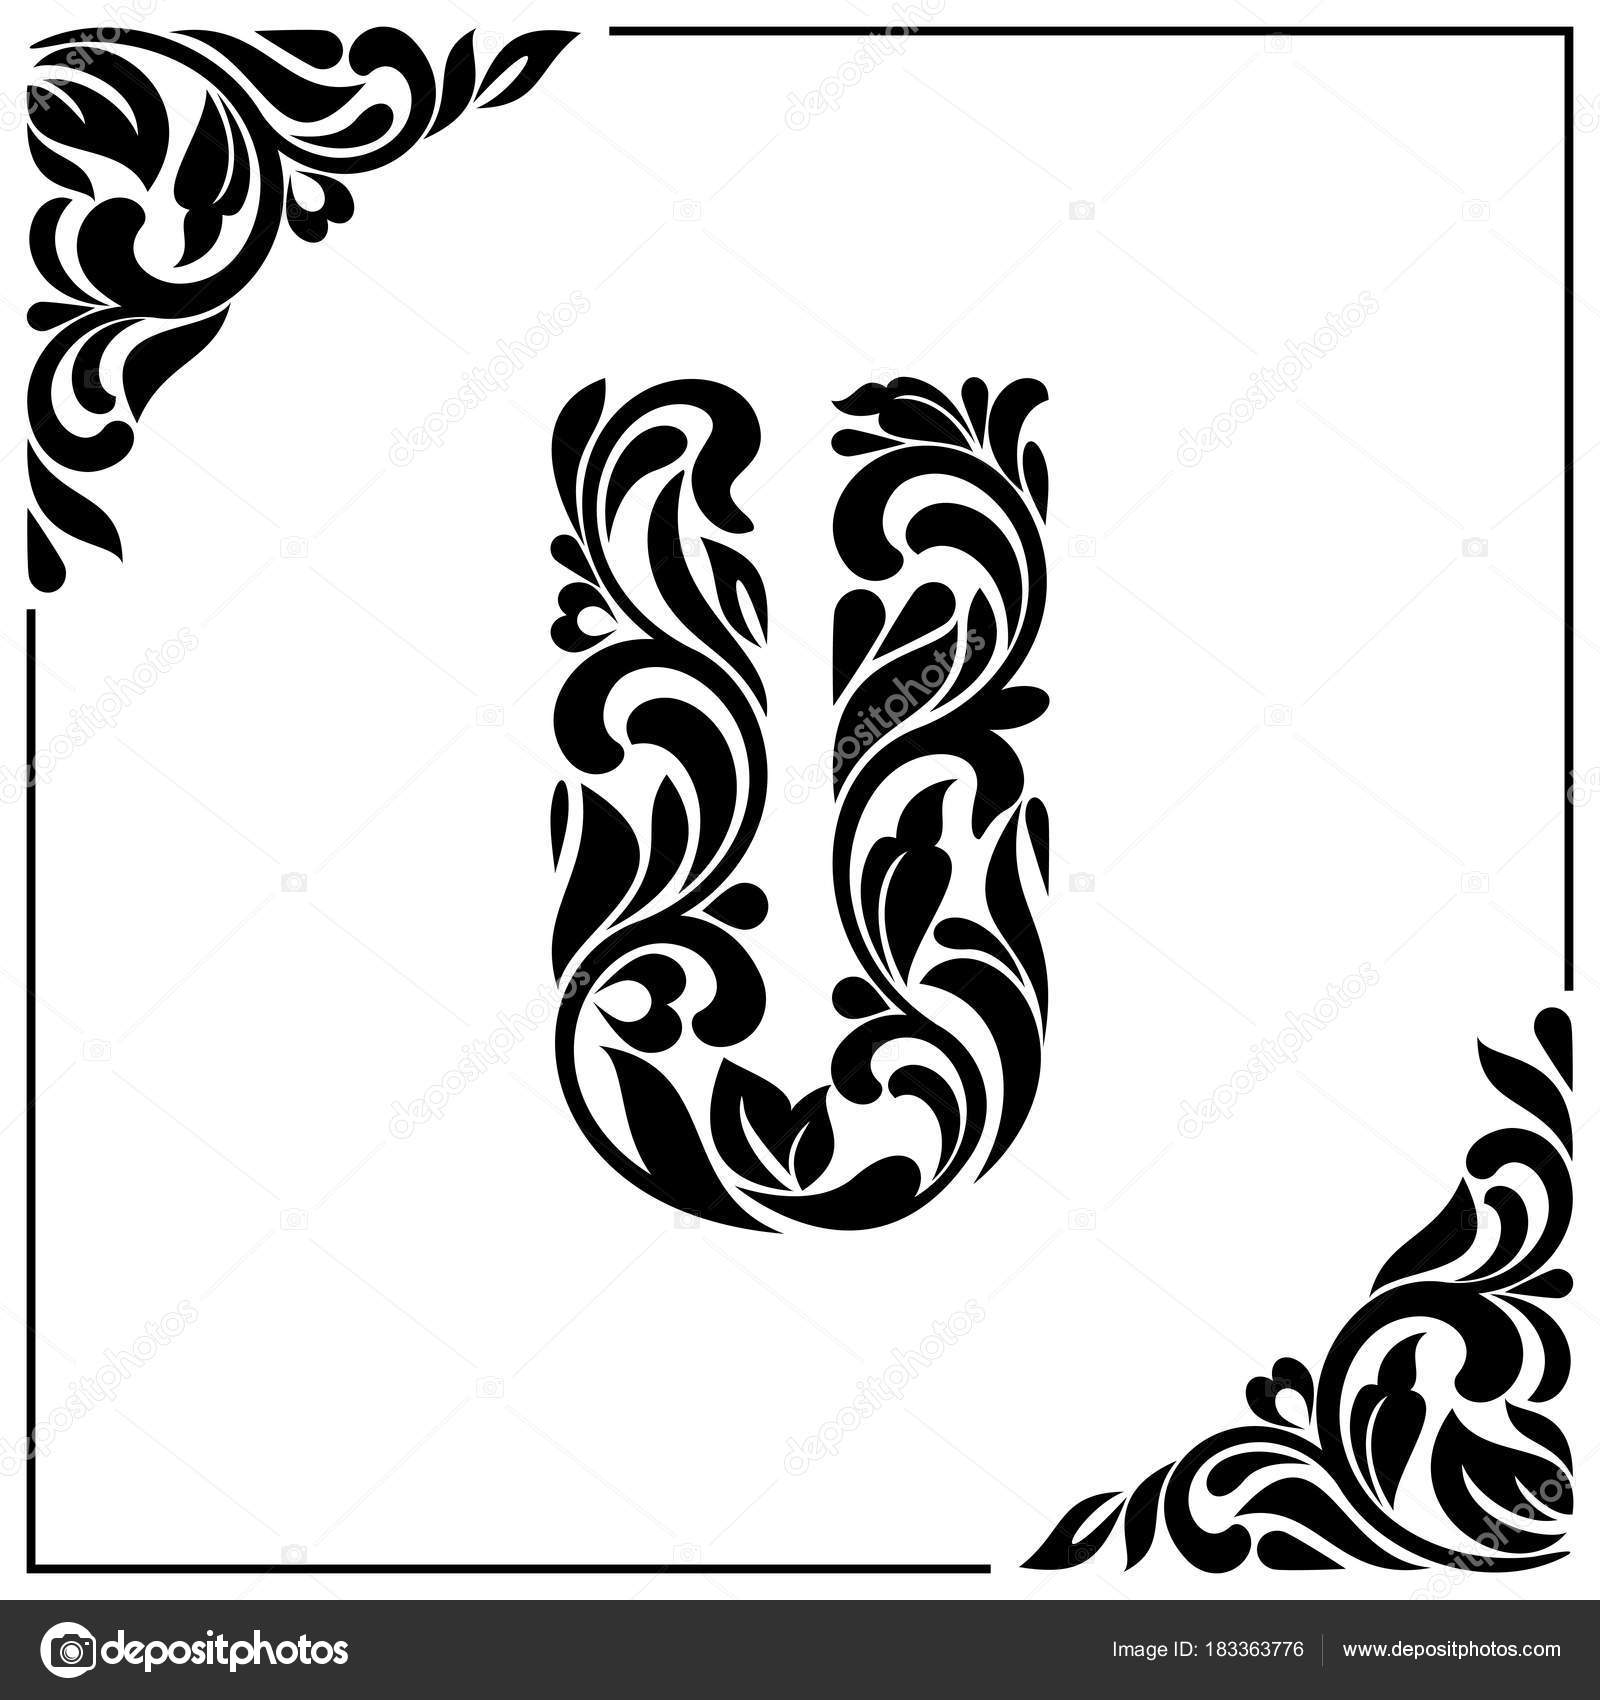 The Letter U Decorative Font With Swirls And Floral Elements Vintage Style Stock